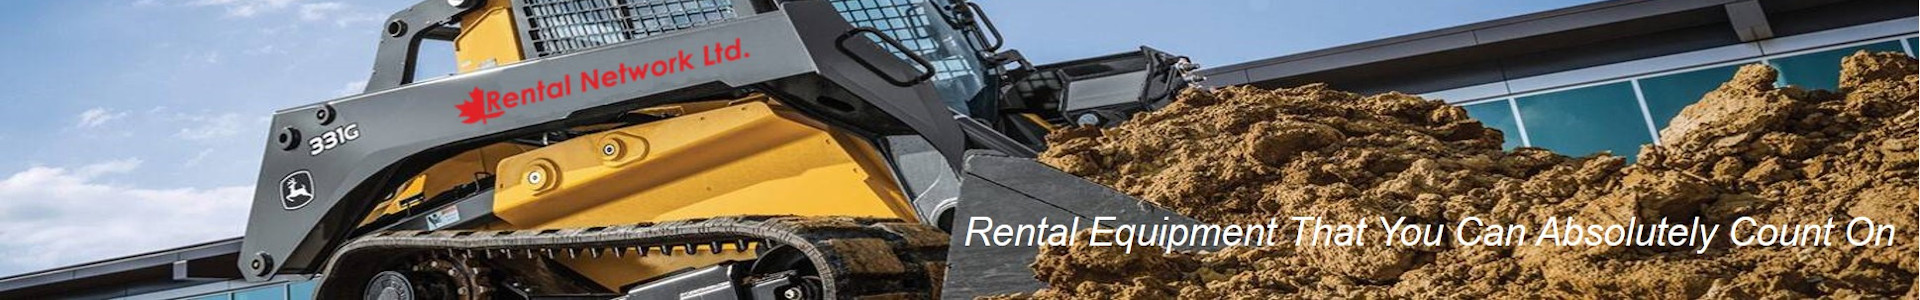 Equipment Rentals & Sales in Vancouver BC